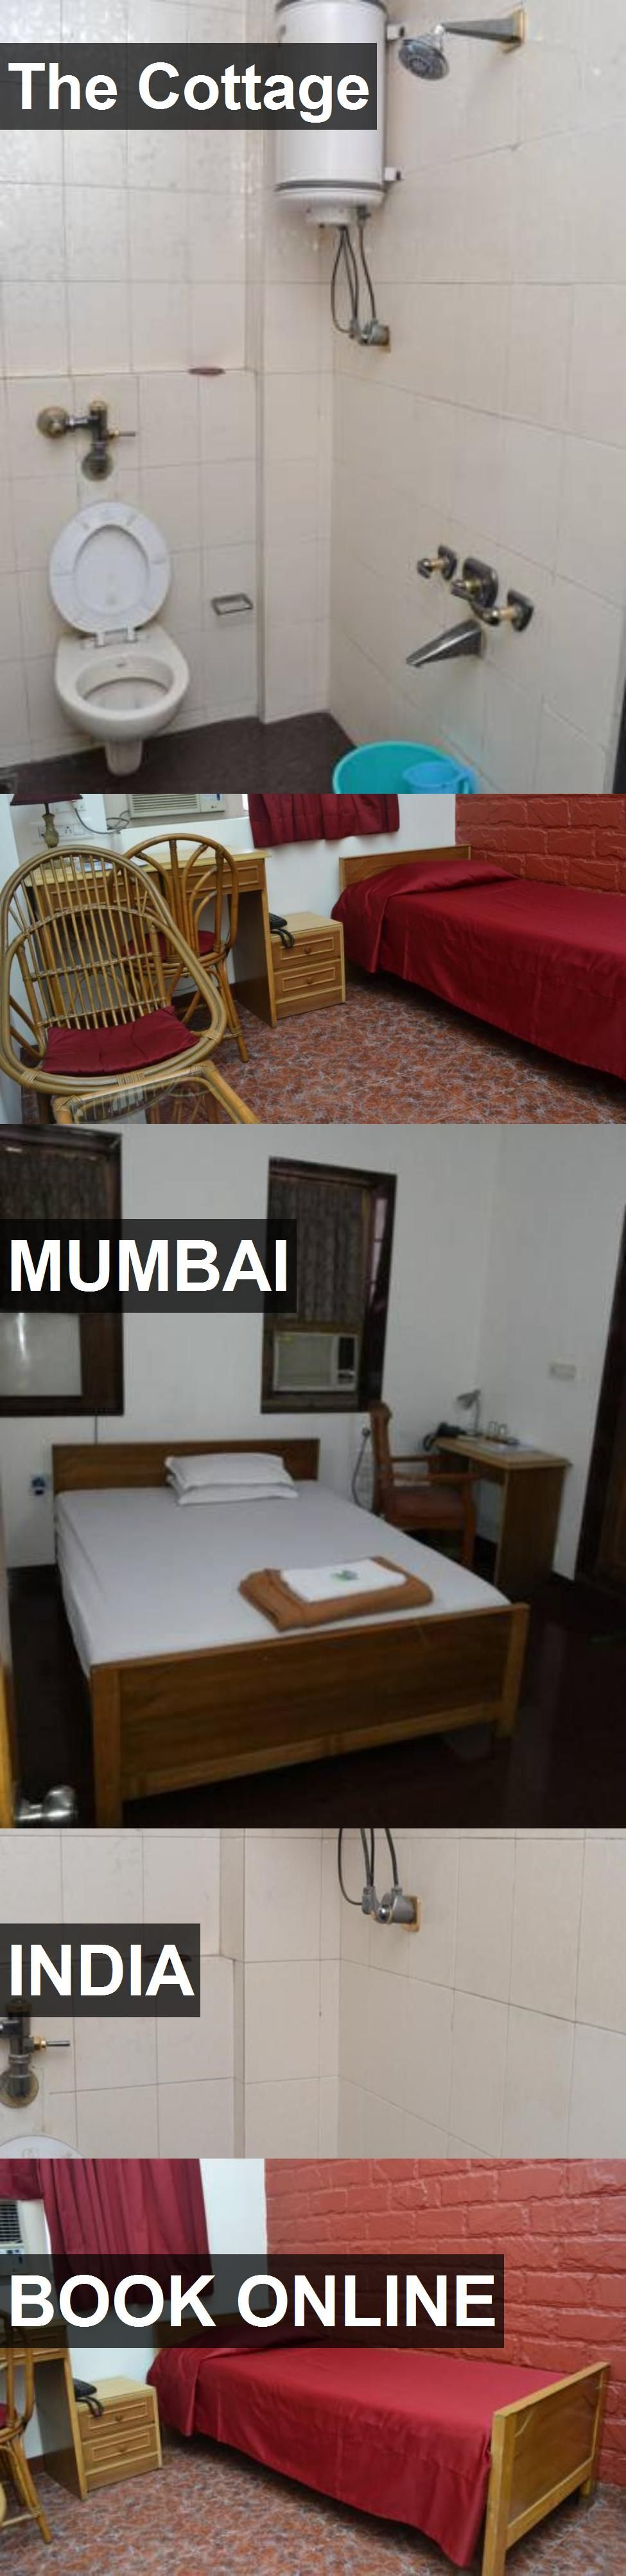 Hotel The Cottage in Mumbai, India. For more information